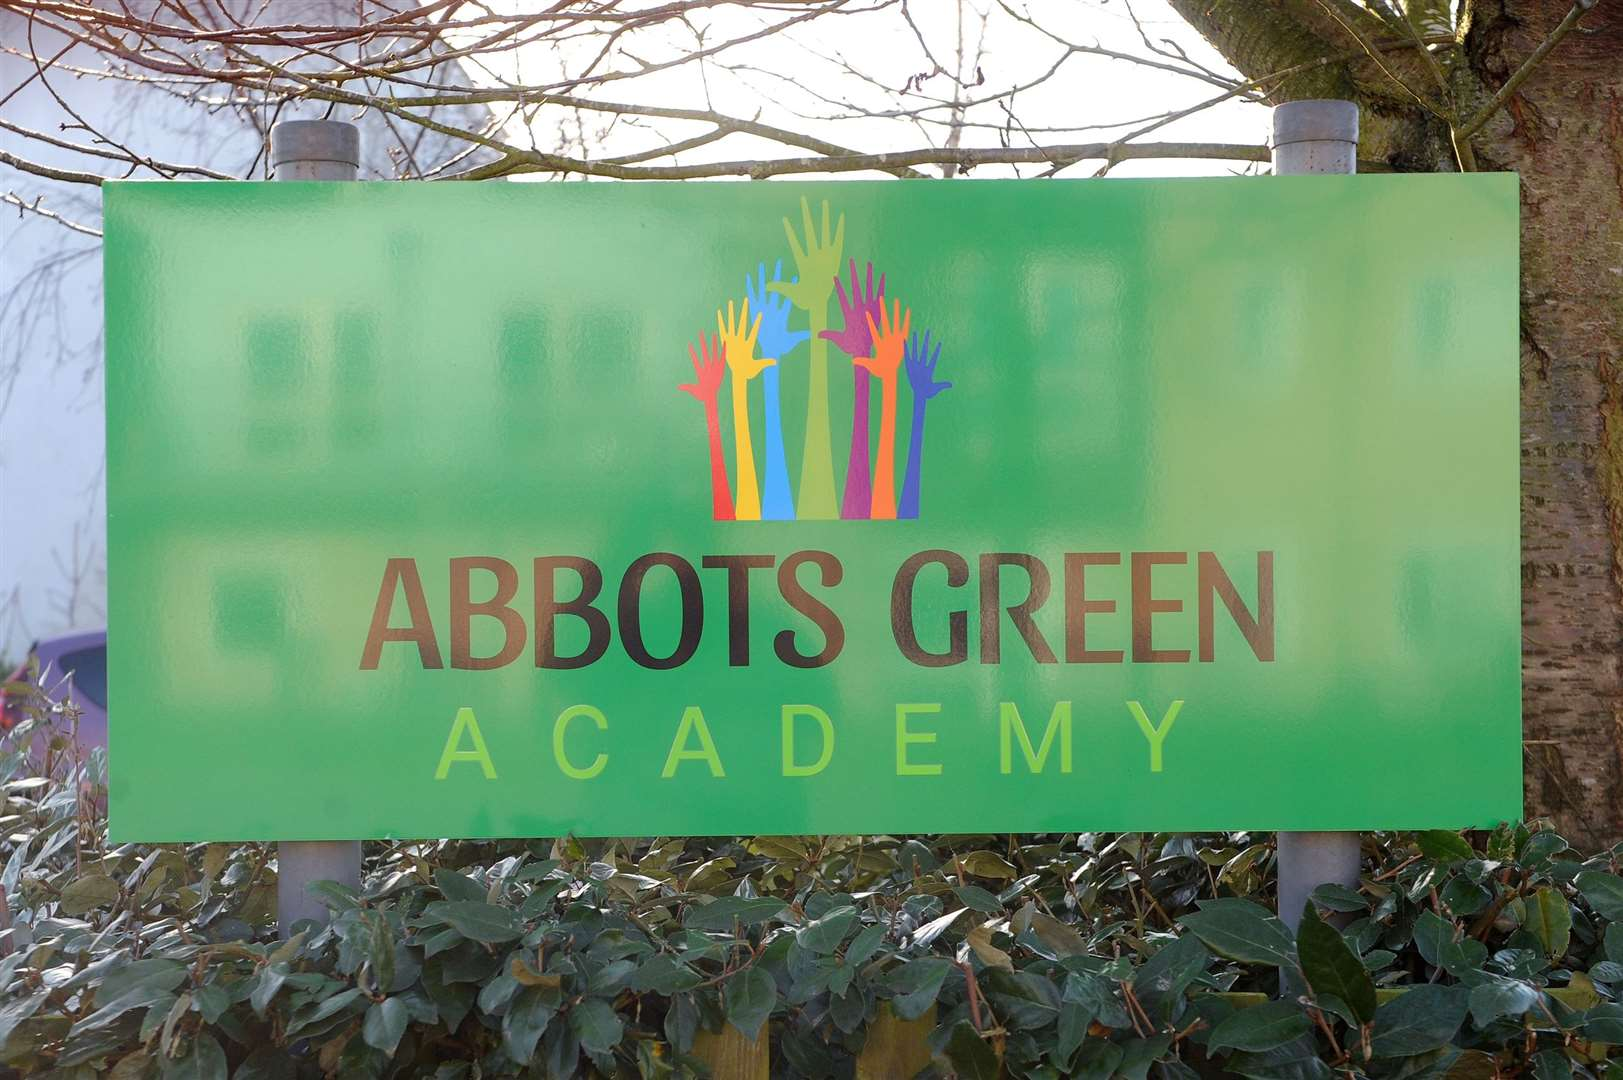 Abbots Green Academy. Picture by Mecha Morton.